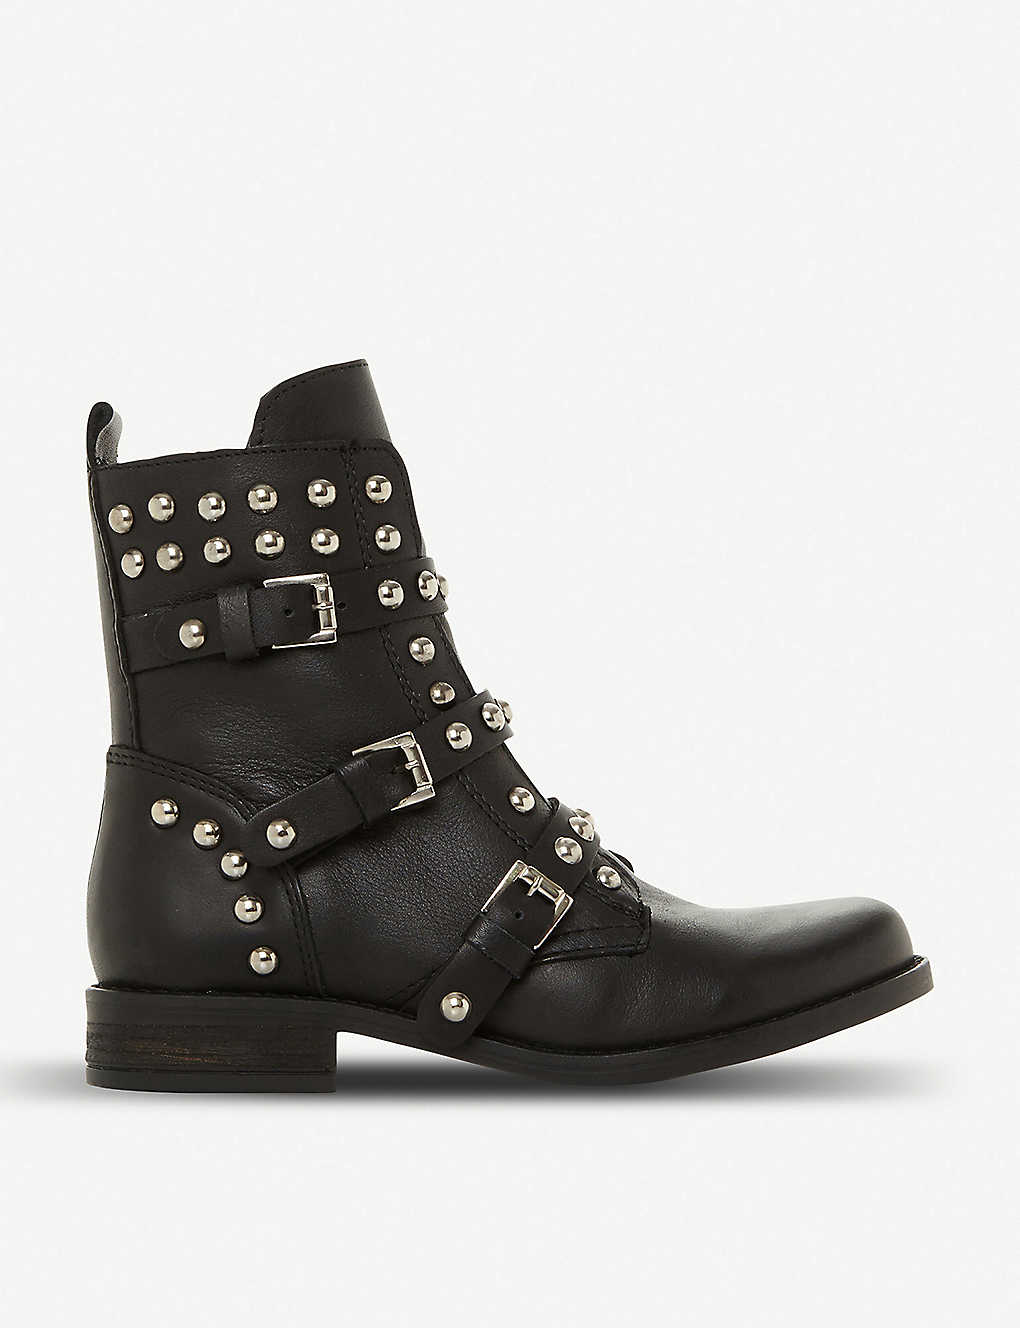 Steve Madden Spunky Stud And Zipper Detail Leather Boots